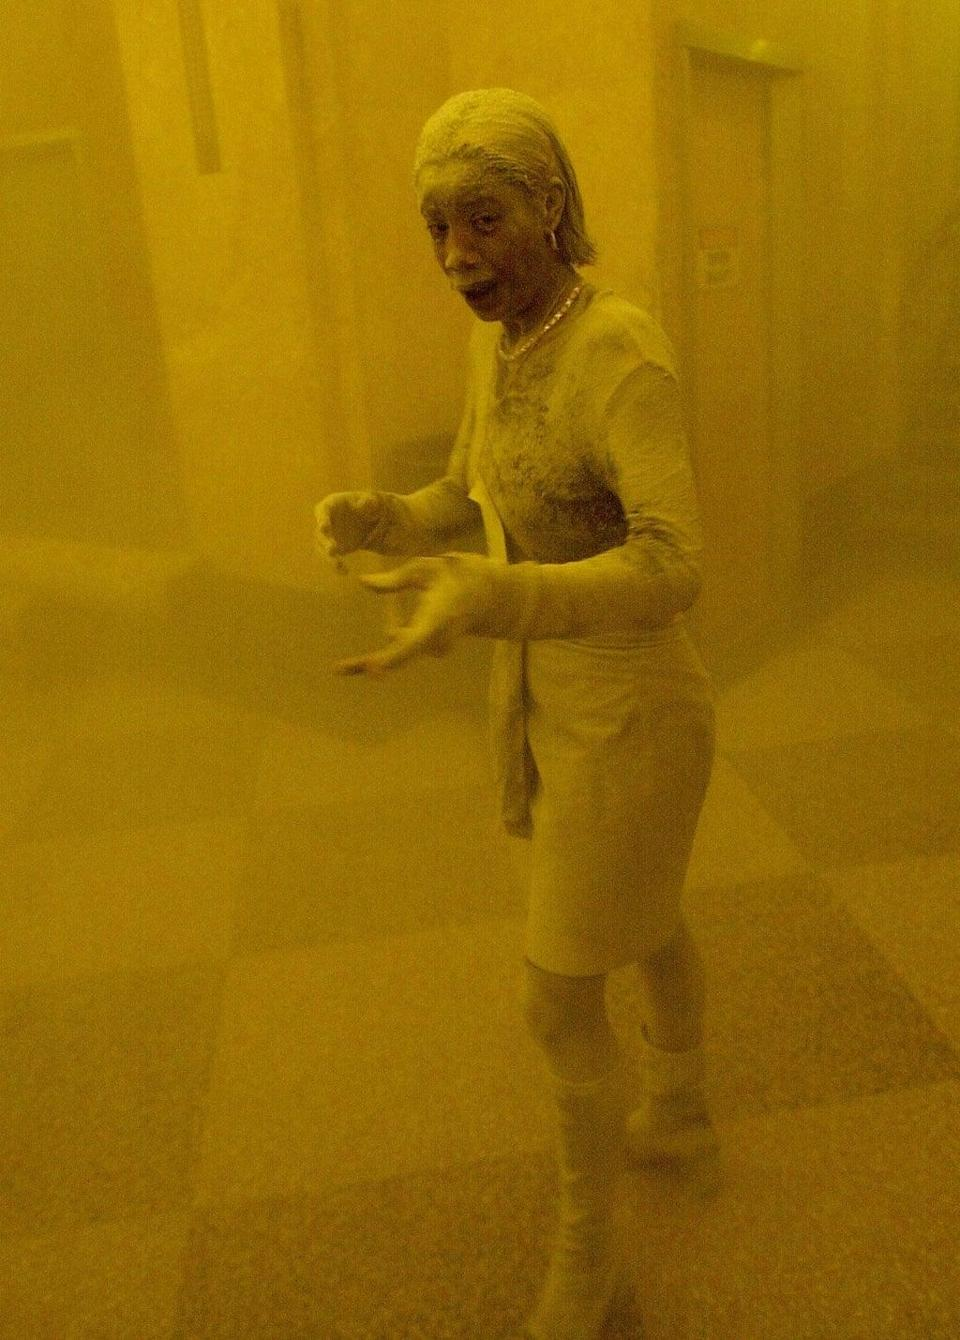 Marcy Borders stands covered in dust as she takes refuge in an office building following the collapse of the Twin Towers (AFP/Getty)